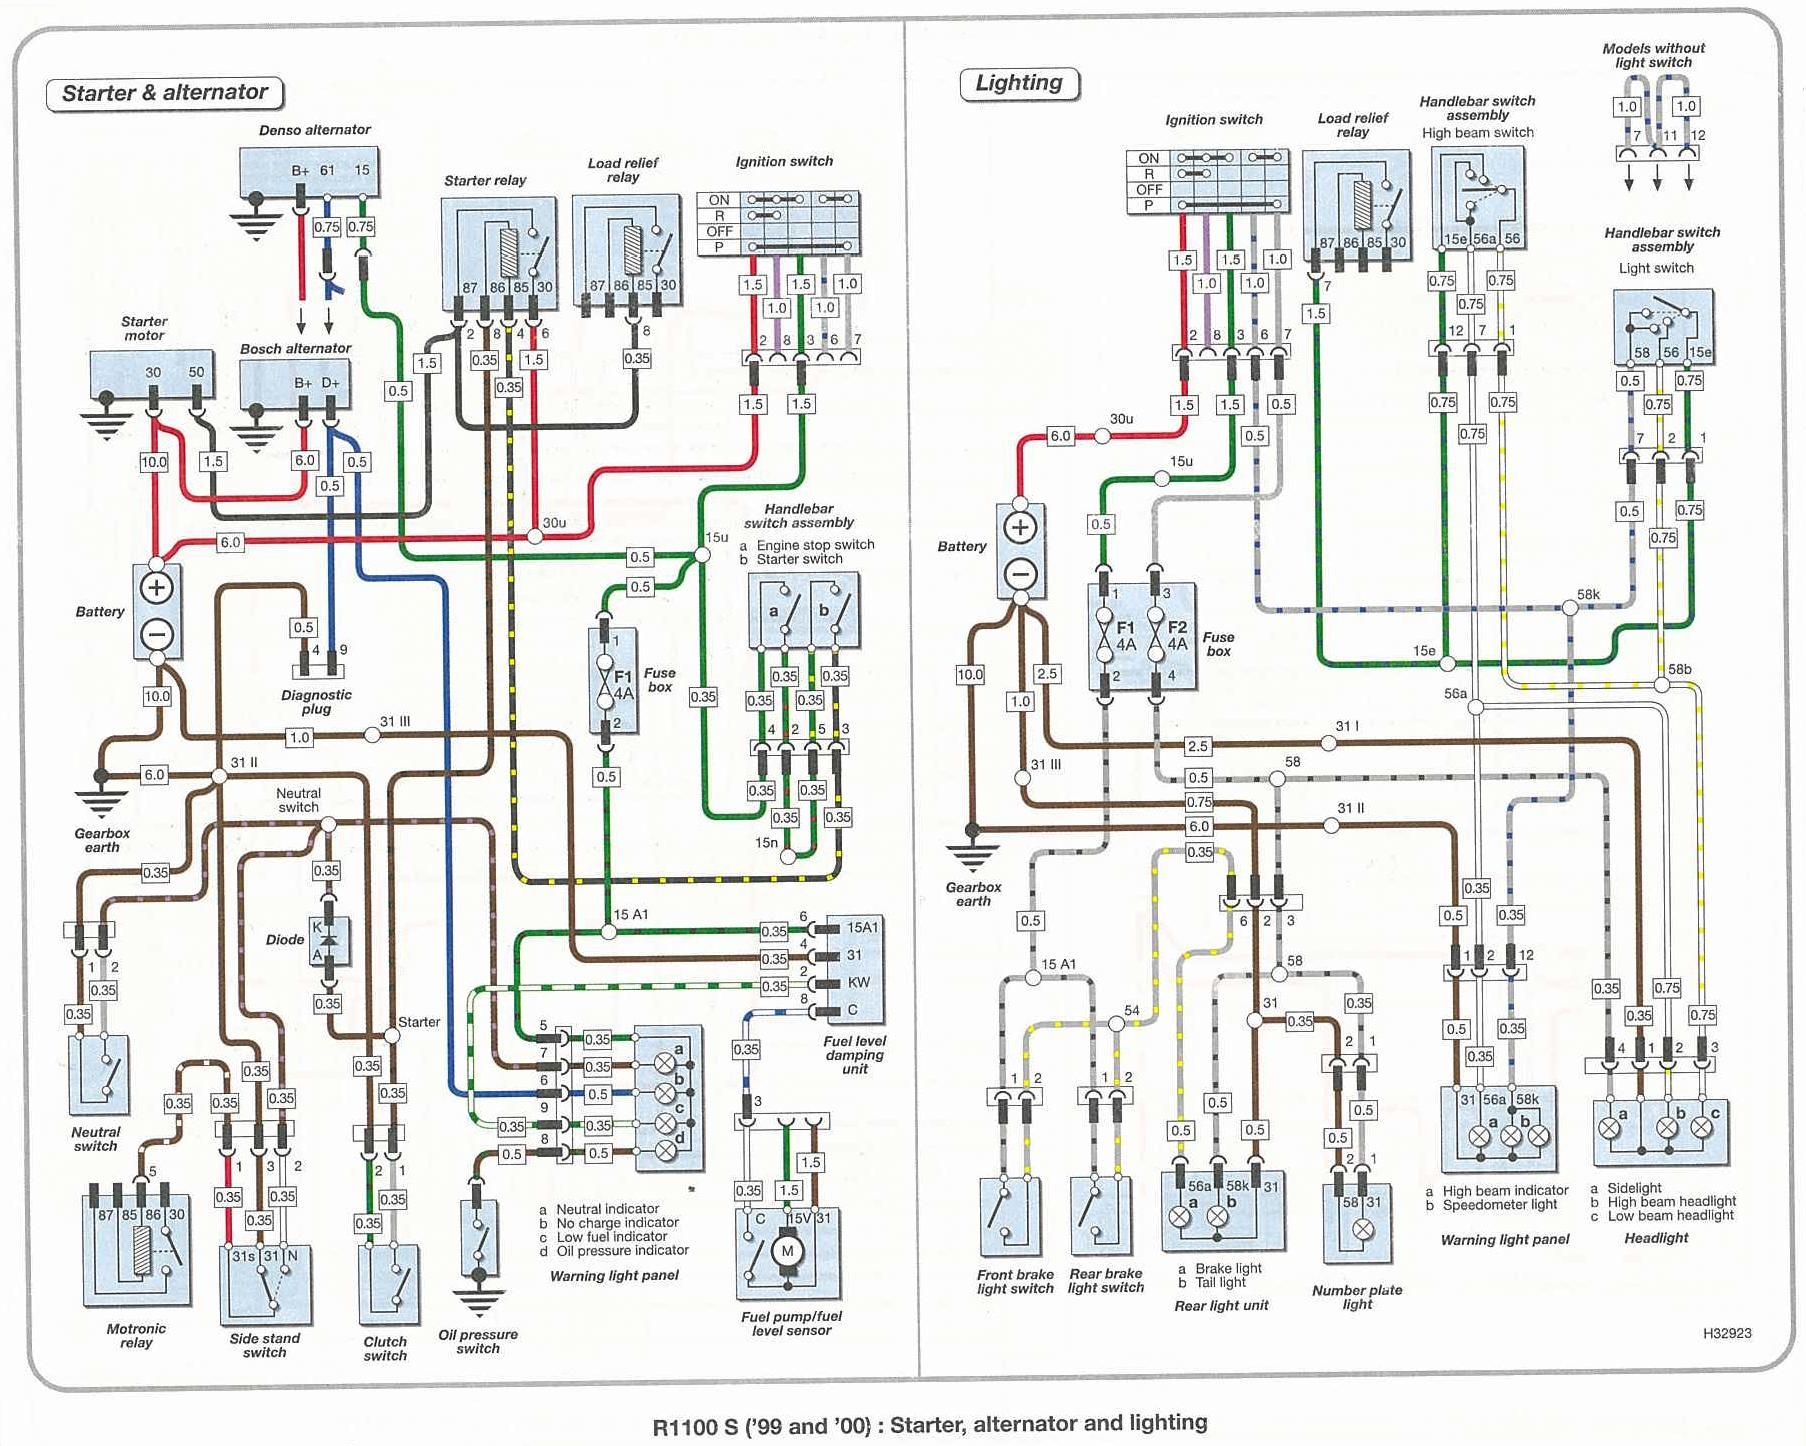 wiring02 bmw 2002 wiring diagram bmw e53 wiring diagram \u2022 free wiring audi a3 wiring diagram pdf at edmiracle.co